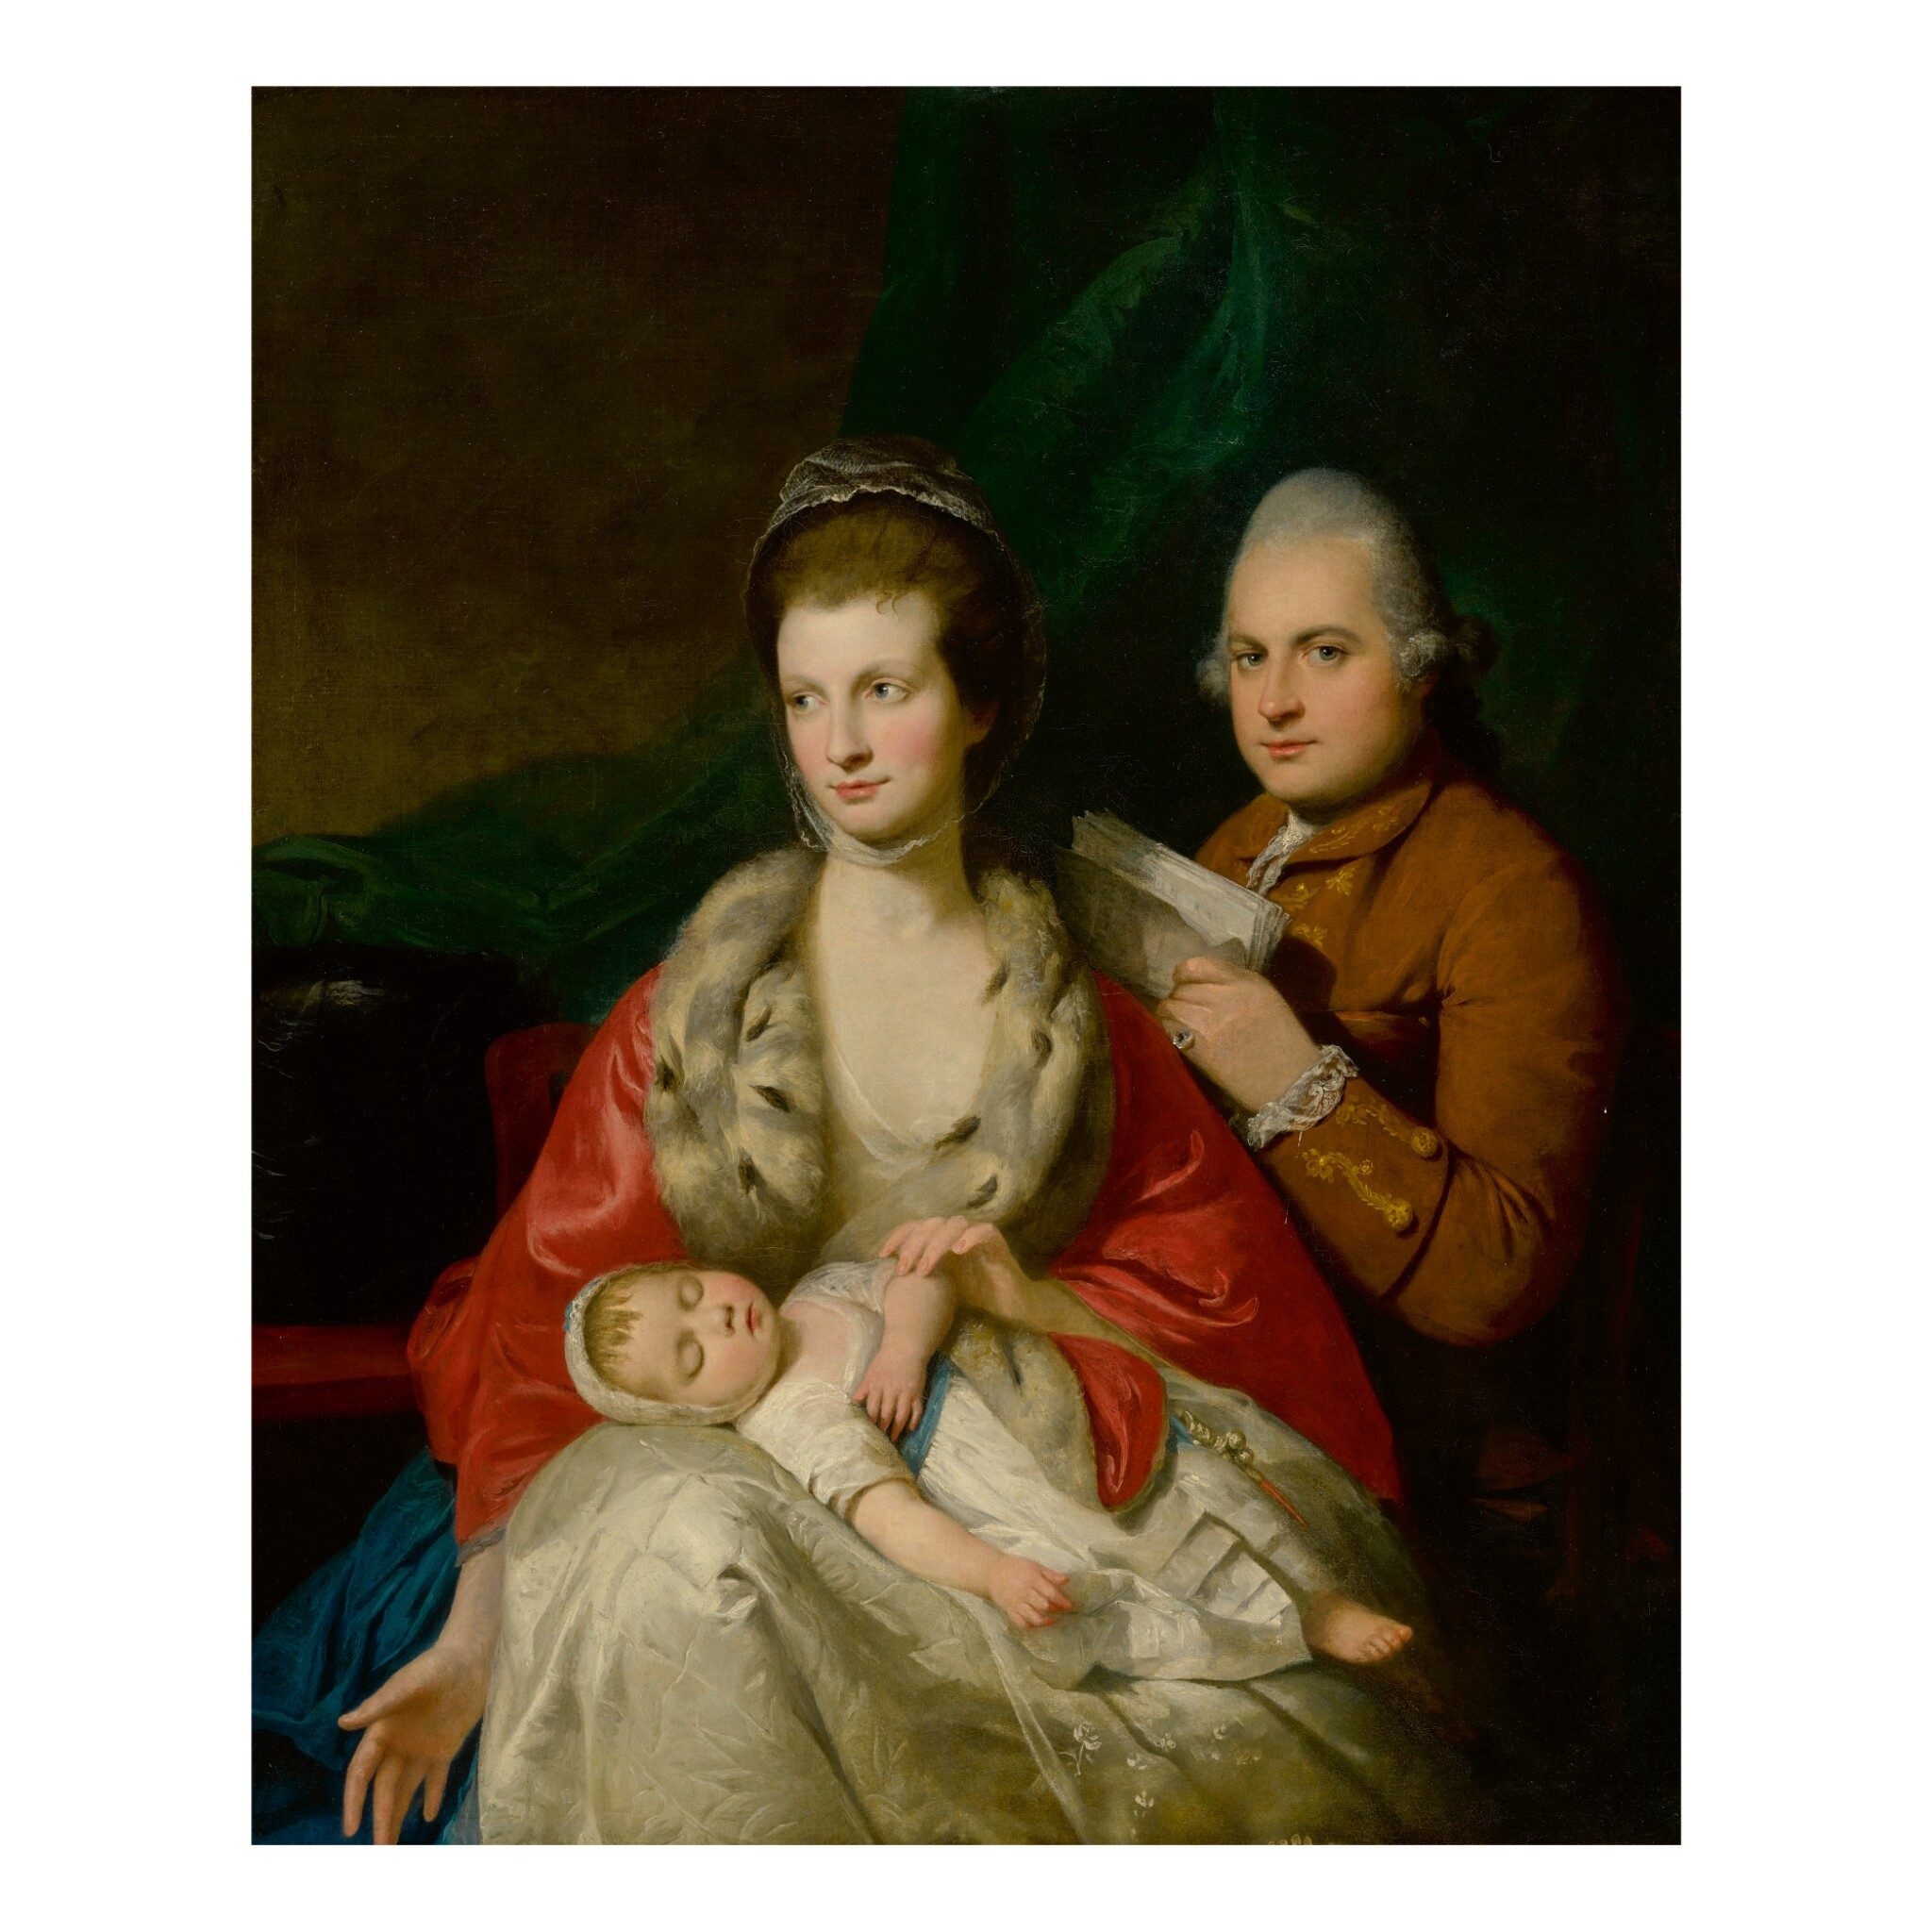 View 1 of Lot 85. MASON CHAMBERLIN, R.A. | PORTRAIT OF A FAMILY: THE MAN HOLDING A MANUSCRIPT AND SEATED BEHIND HIS WIFE, WHO WEARS AN ERMINE COAT AND HOLDS HER SLEEPING INFANT.